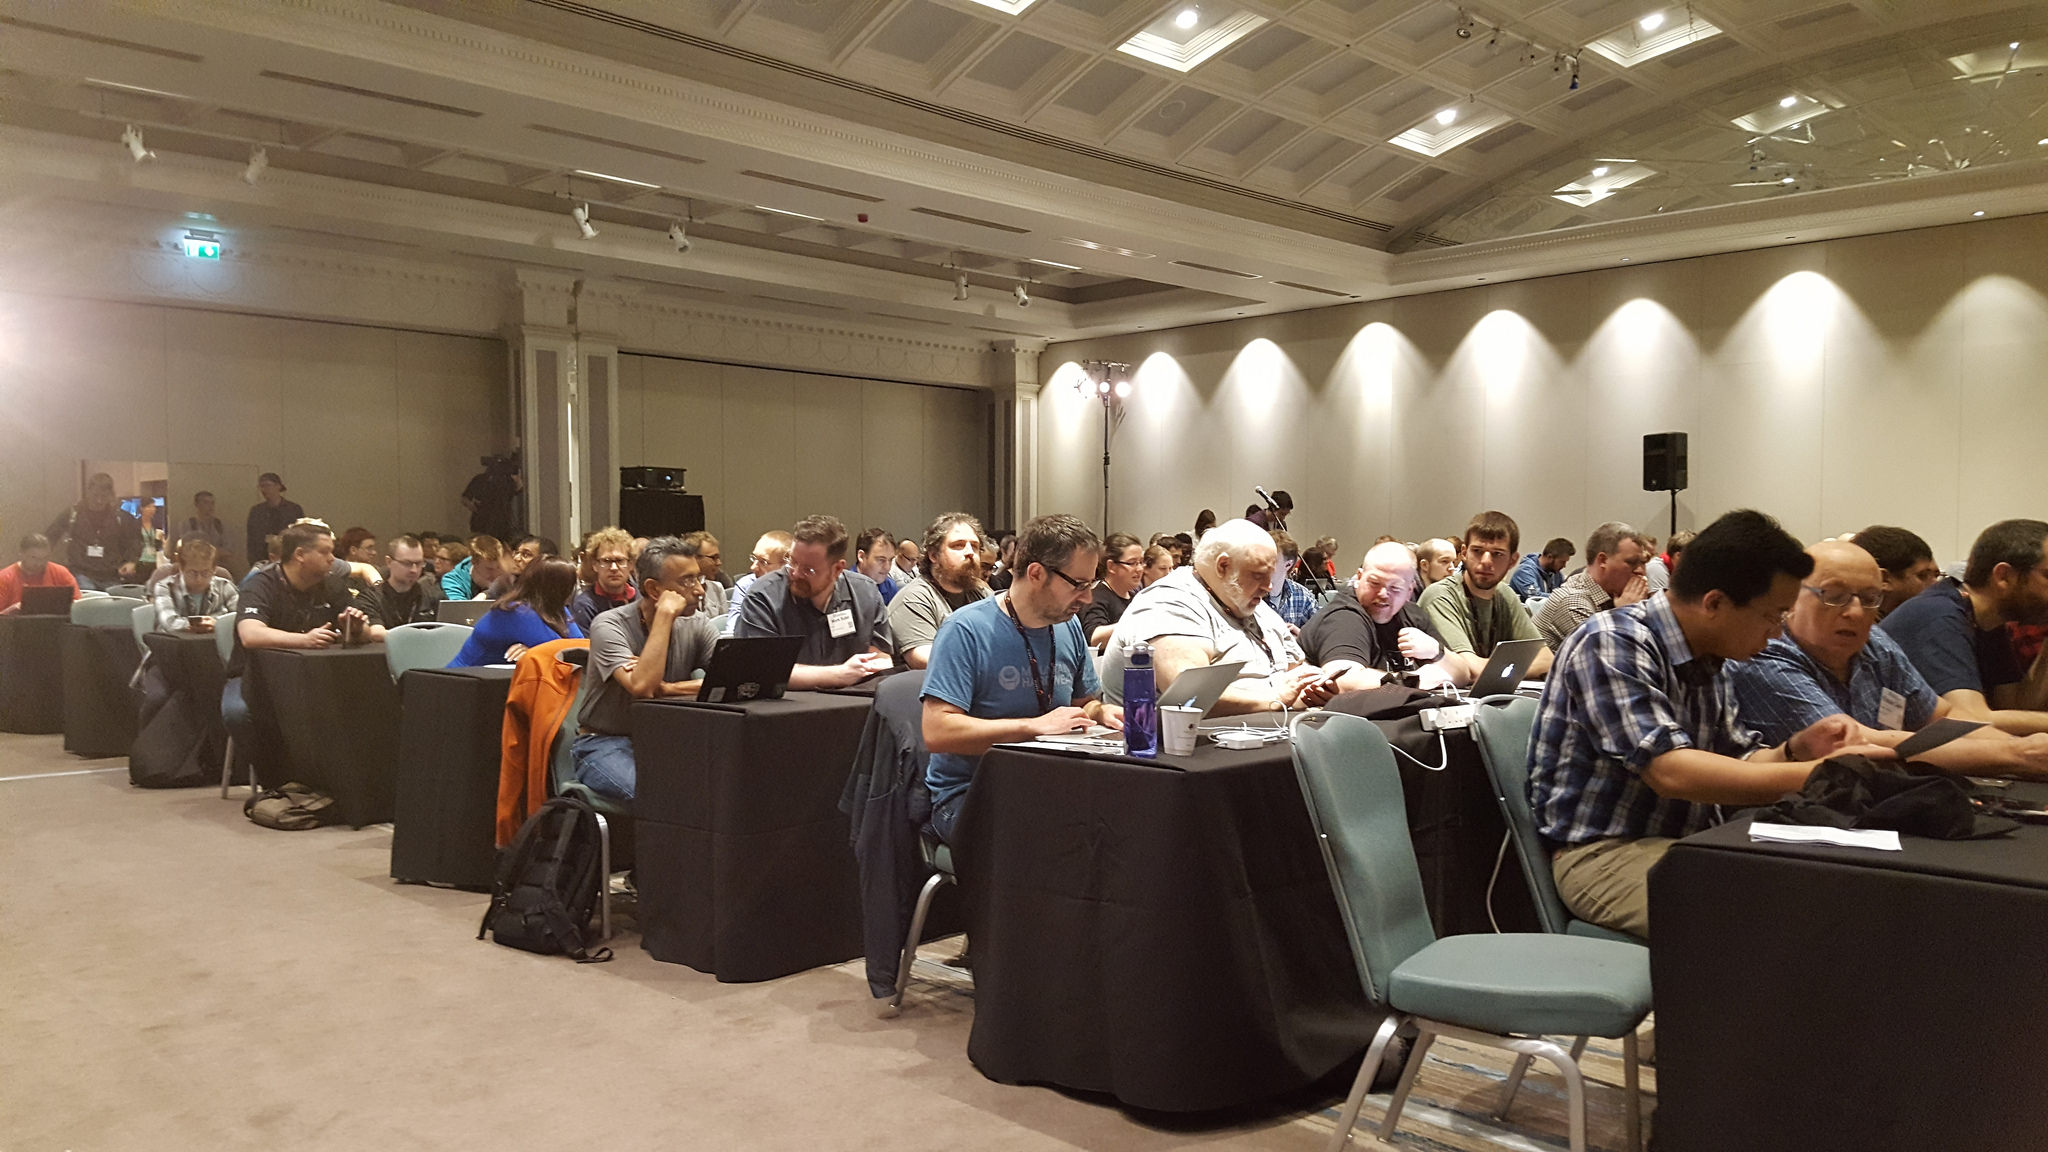 Attendees at SRECon